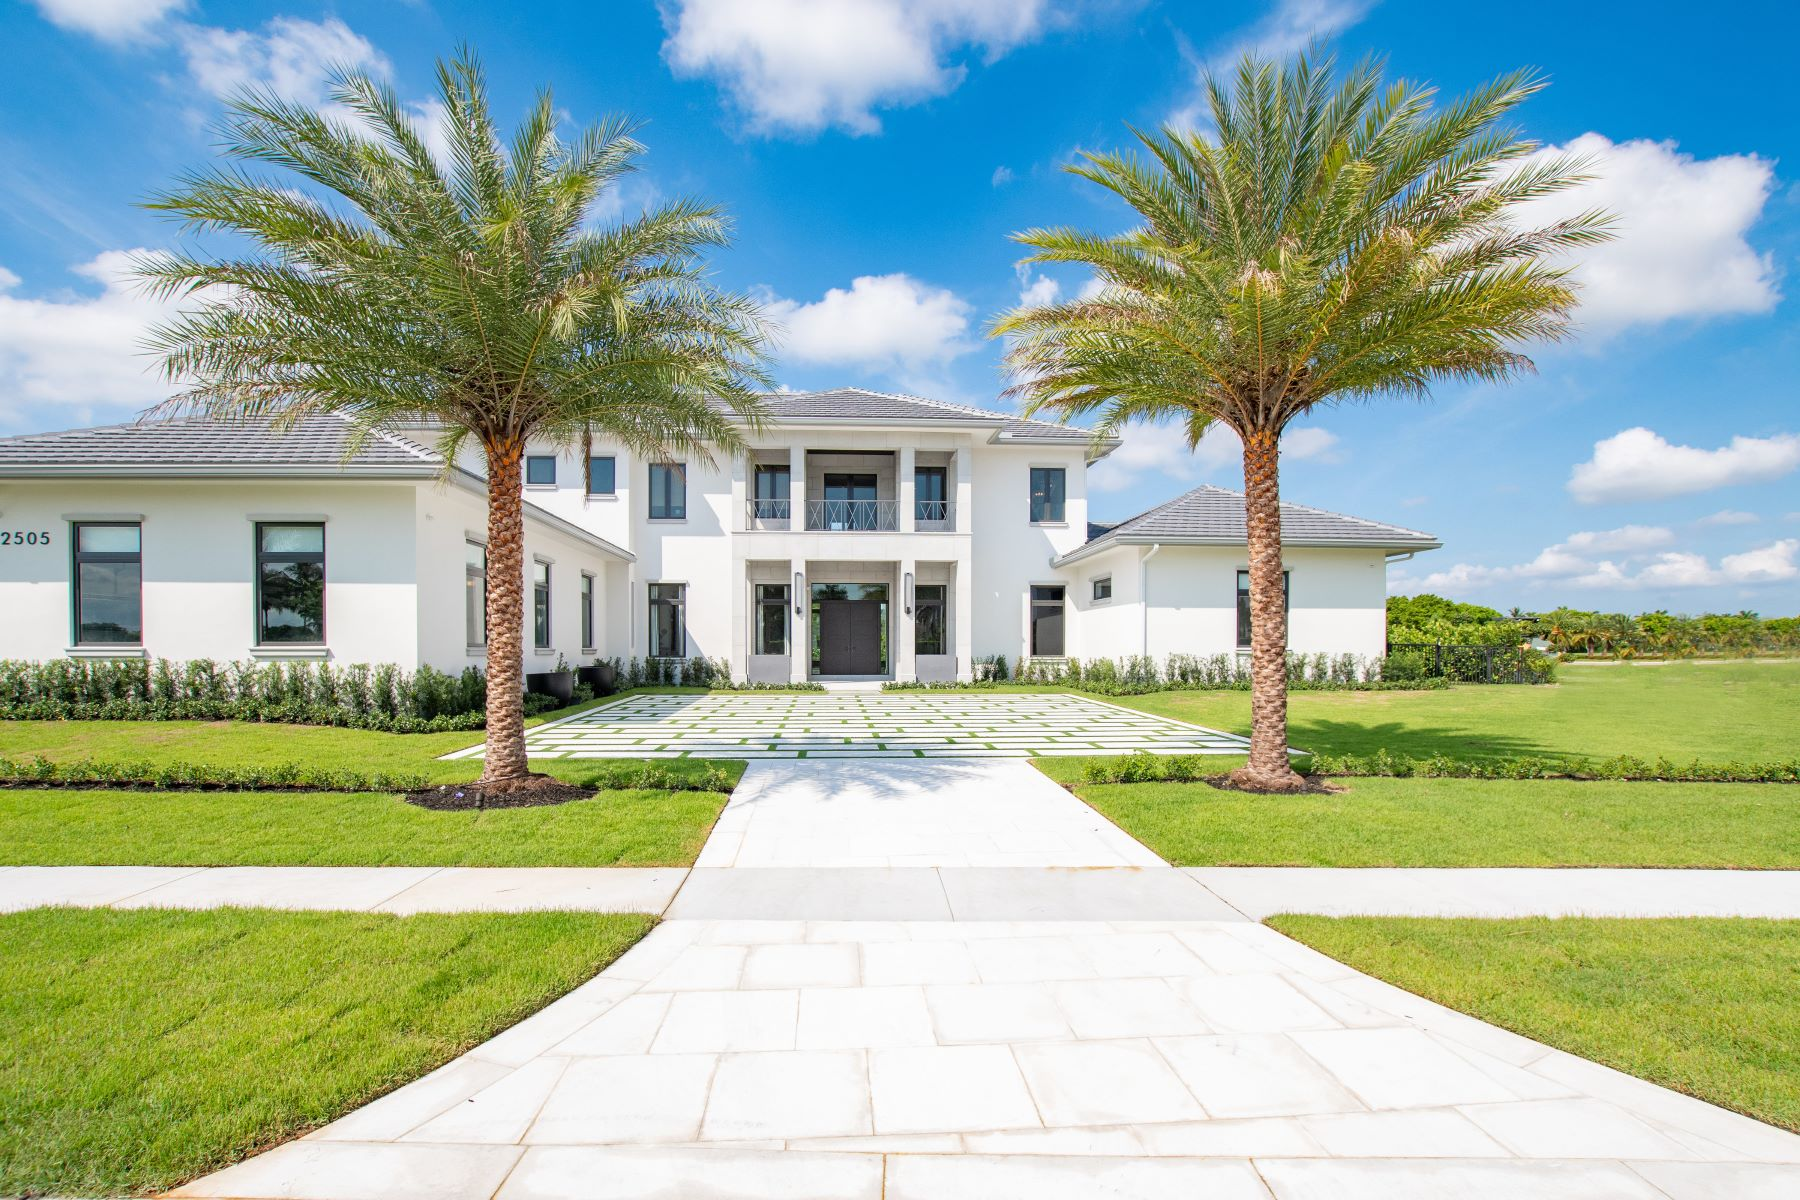 Single Family Homes for Active at 2505 Cypress Island Court Wellington, Florida 33414 United States